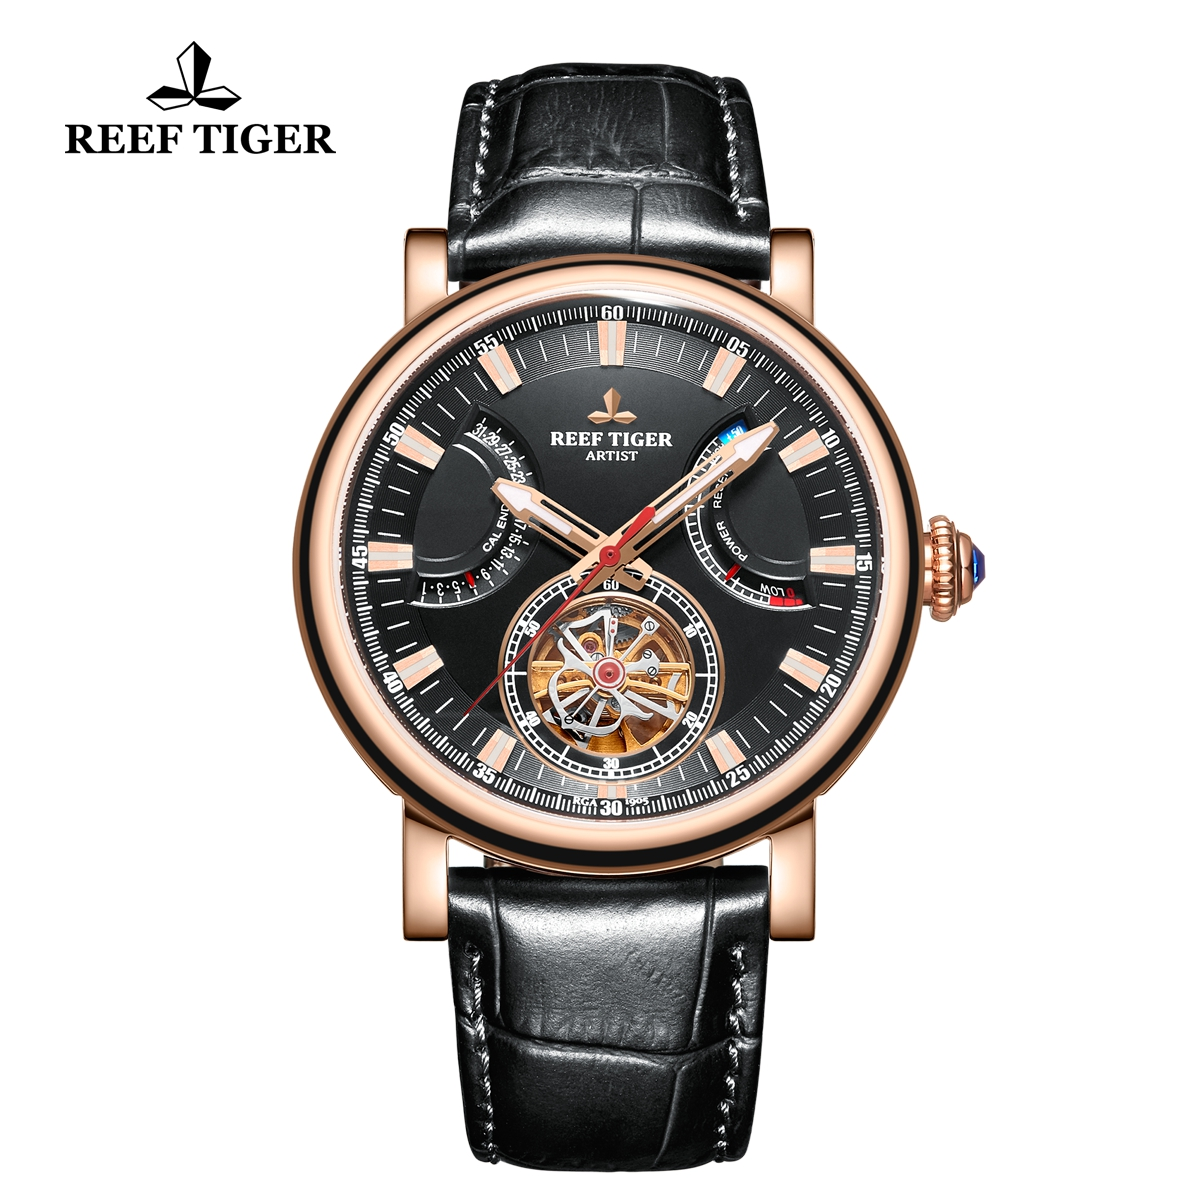 Reef Tiger Artist Photographer Rose Gold Leather Strap Black Dial Tourbillon Automatic Watch RGA1950-PBB